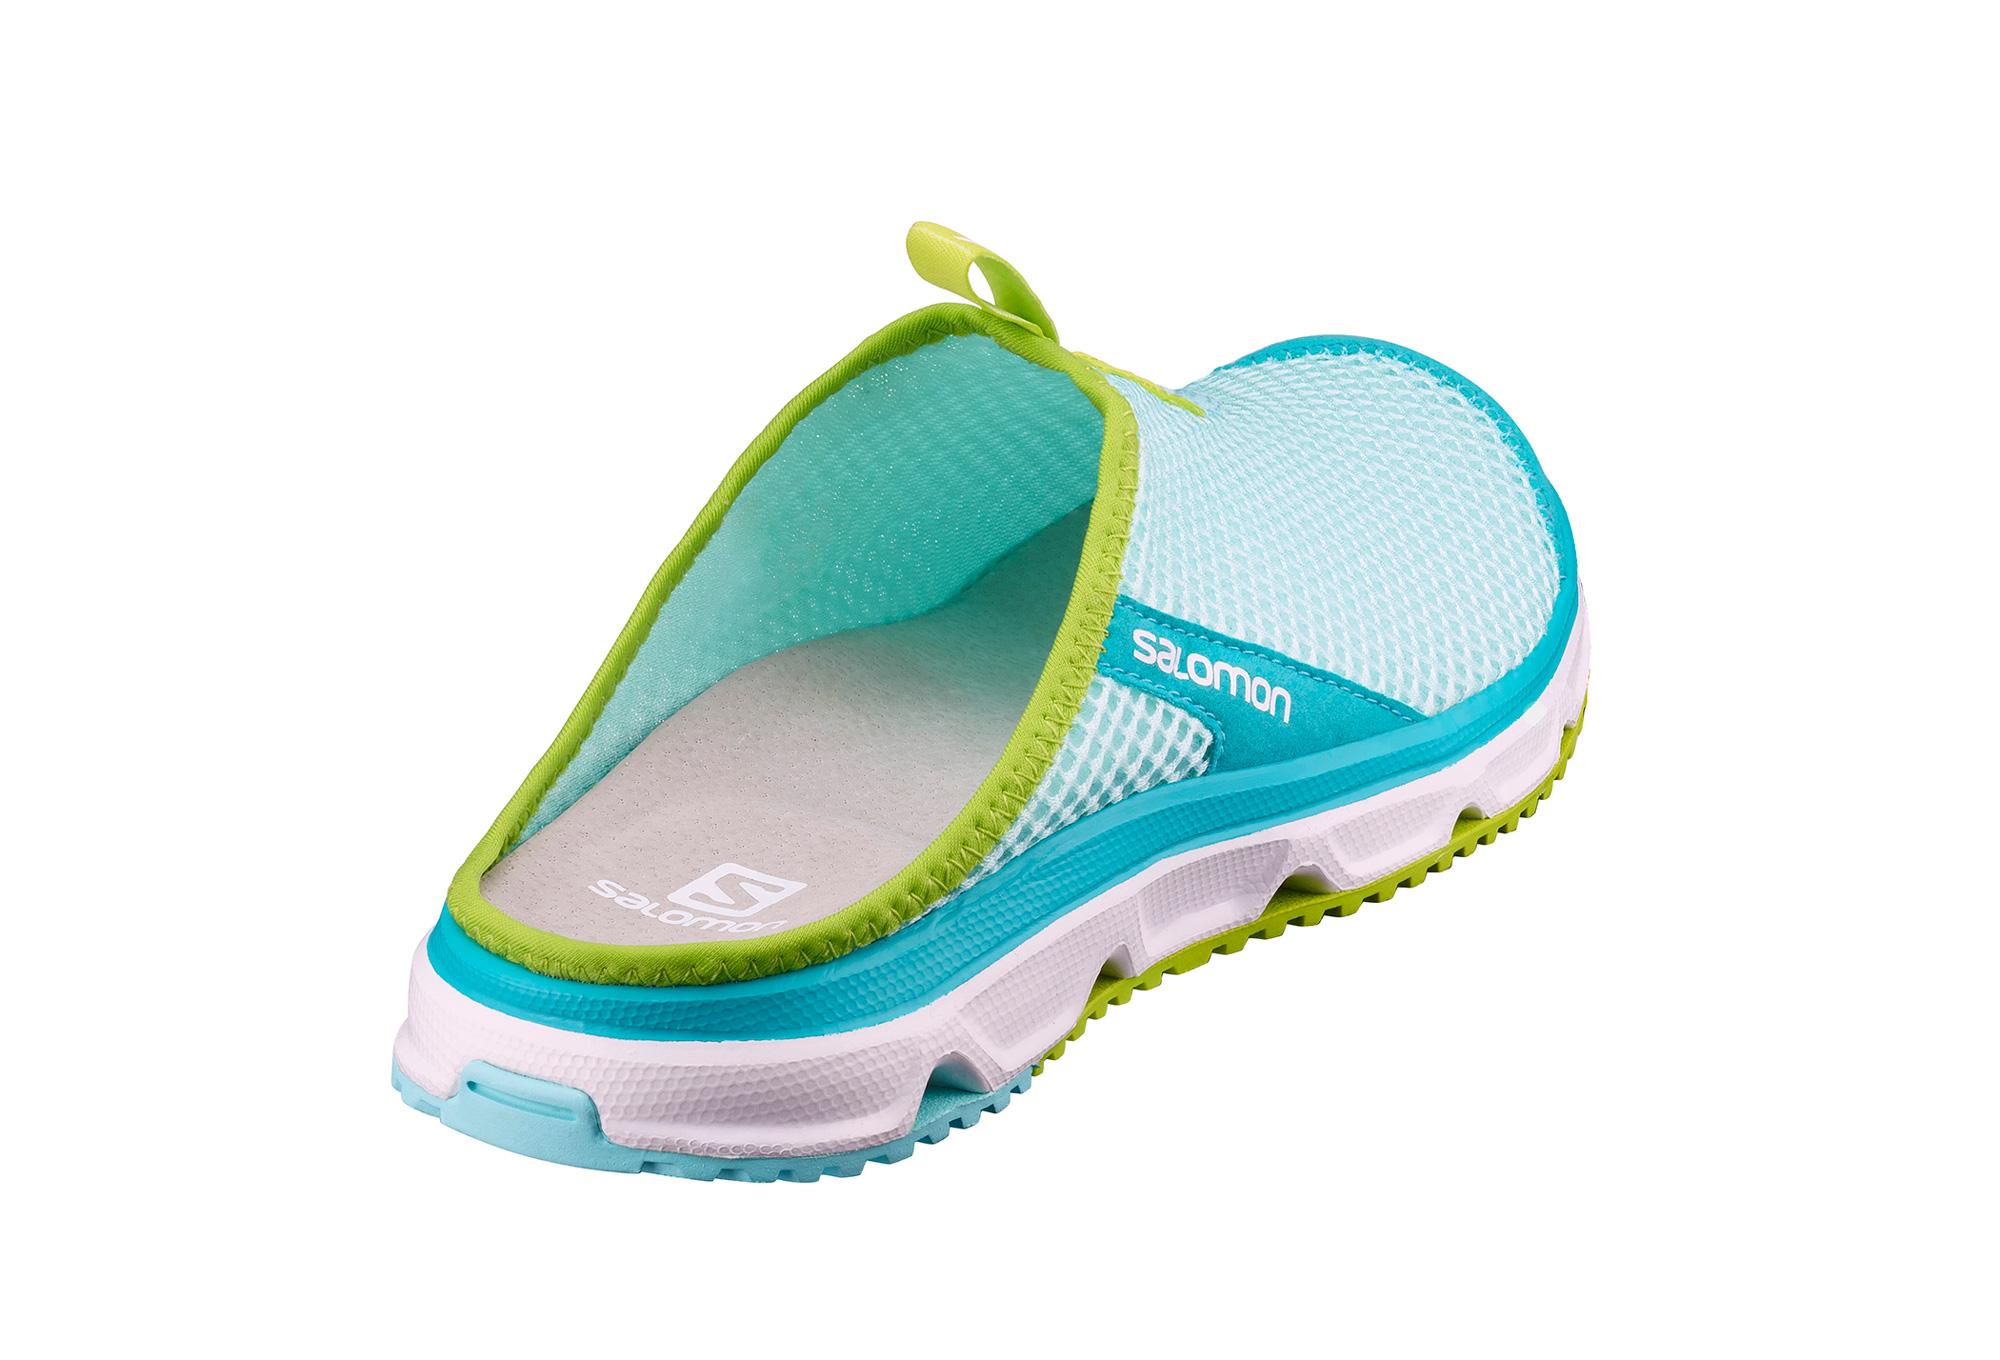 salomon rx slide 3 0 recovery shoes women blue green. Black Bedroom Furniture Sets. Home Design Ideas